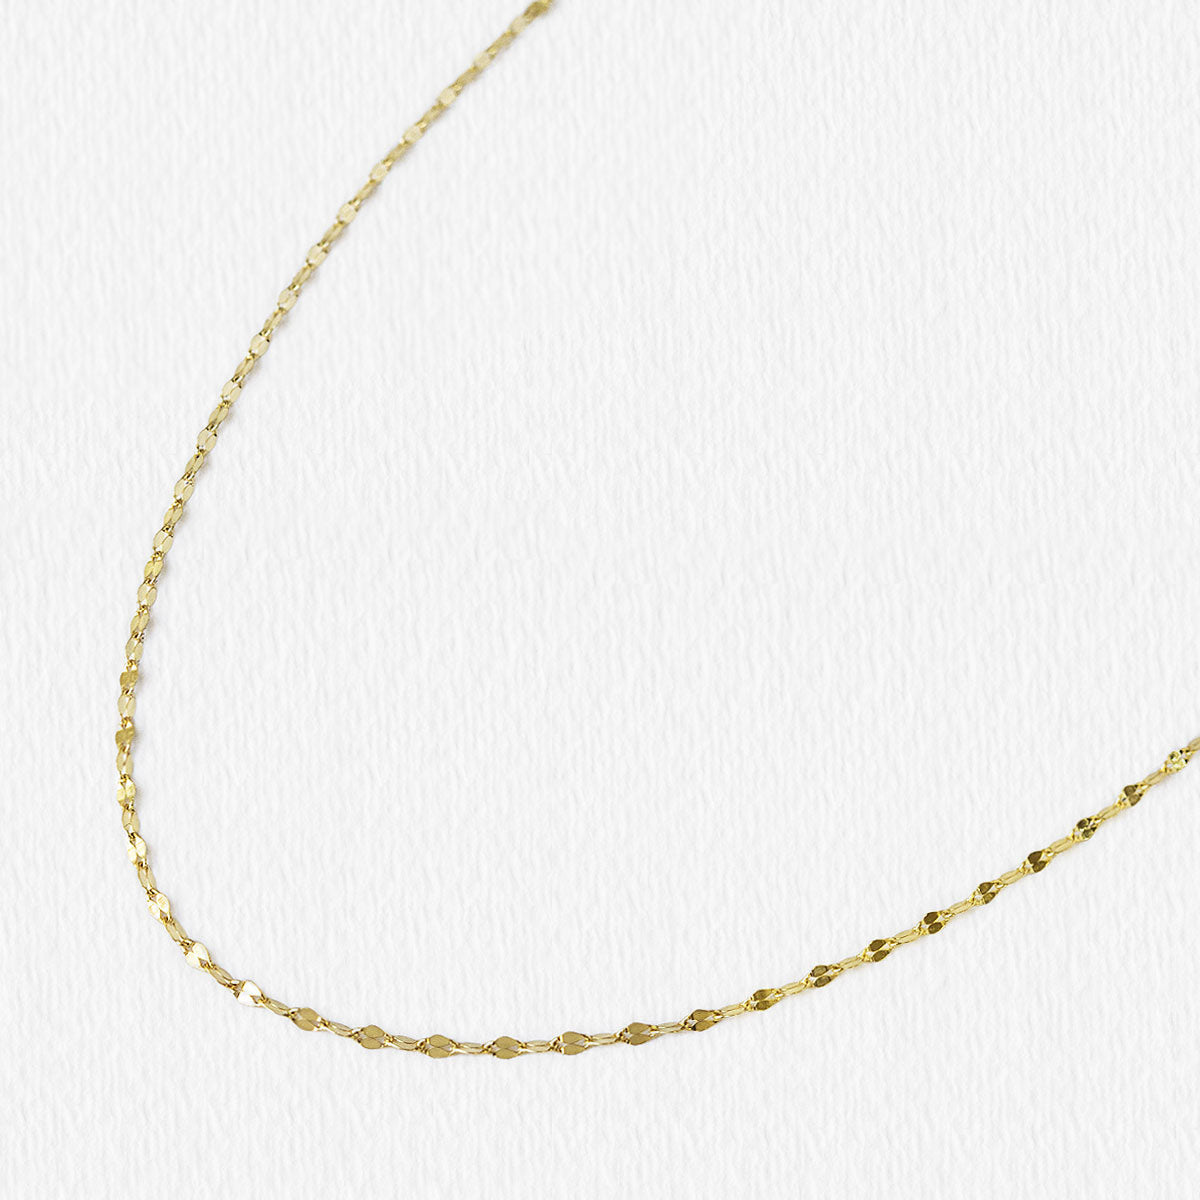 Front Chain for Back Necklace